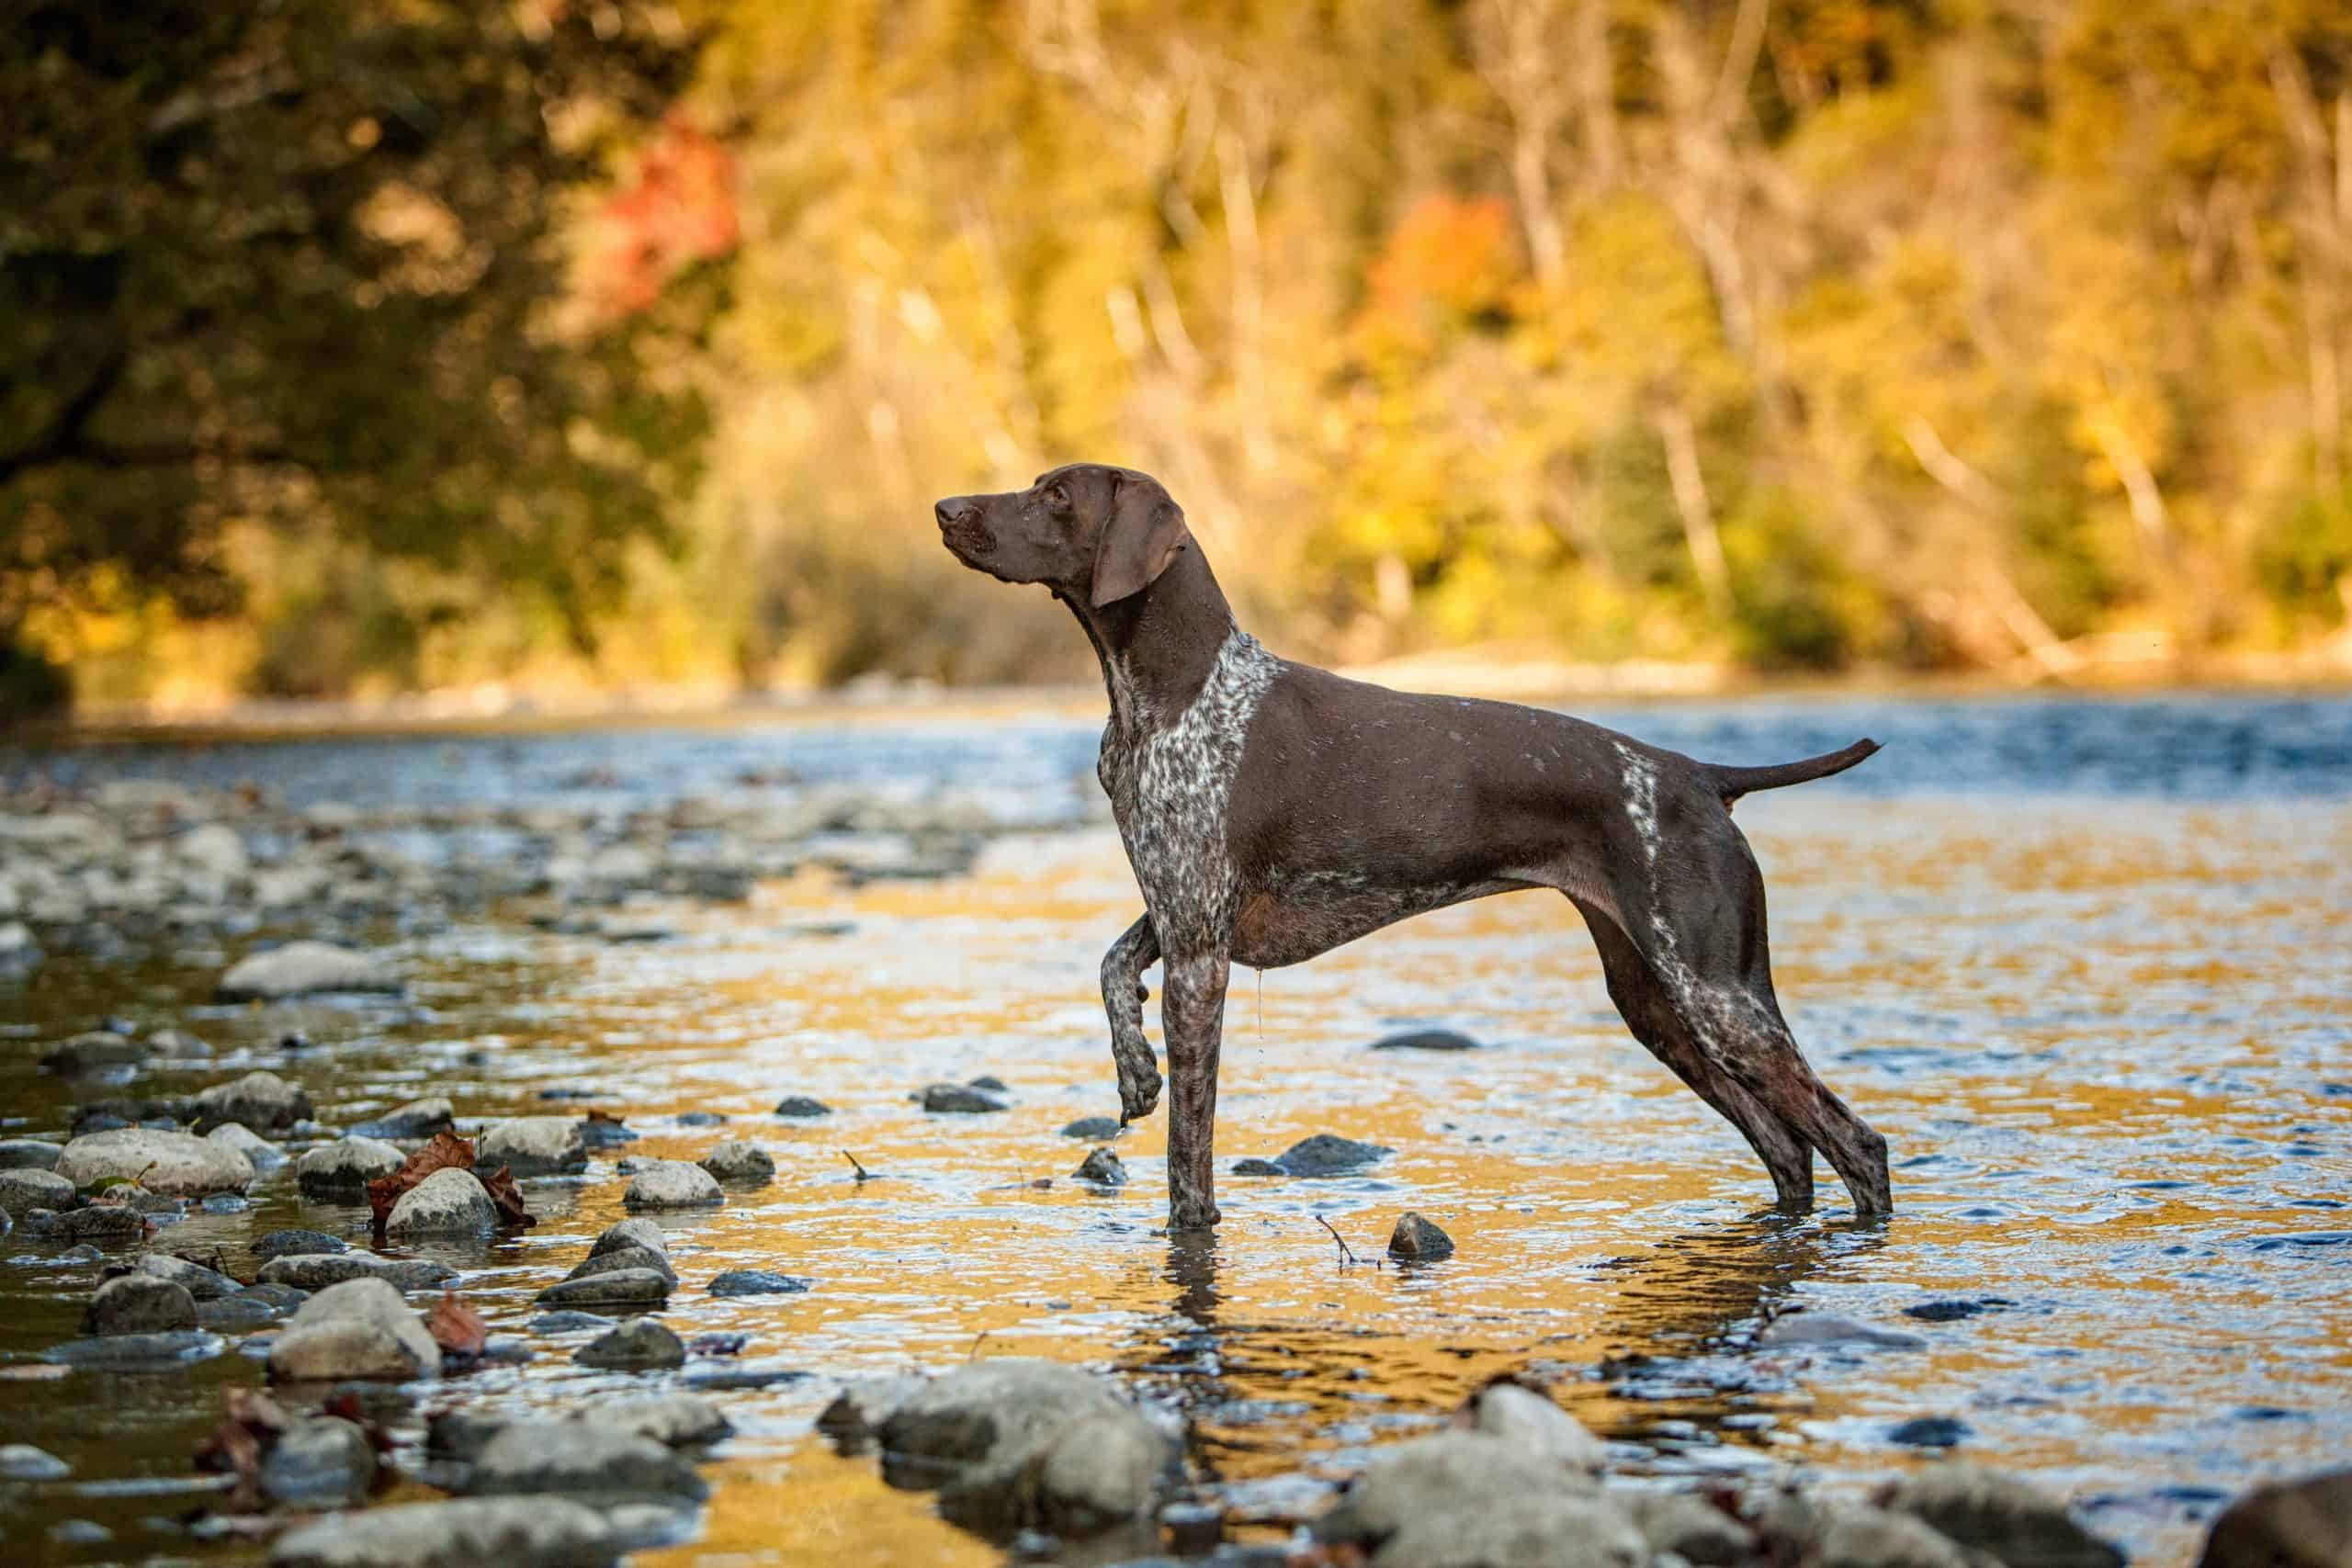 The German short-haired pointer is a popular hunting dog.